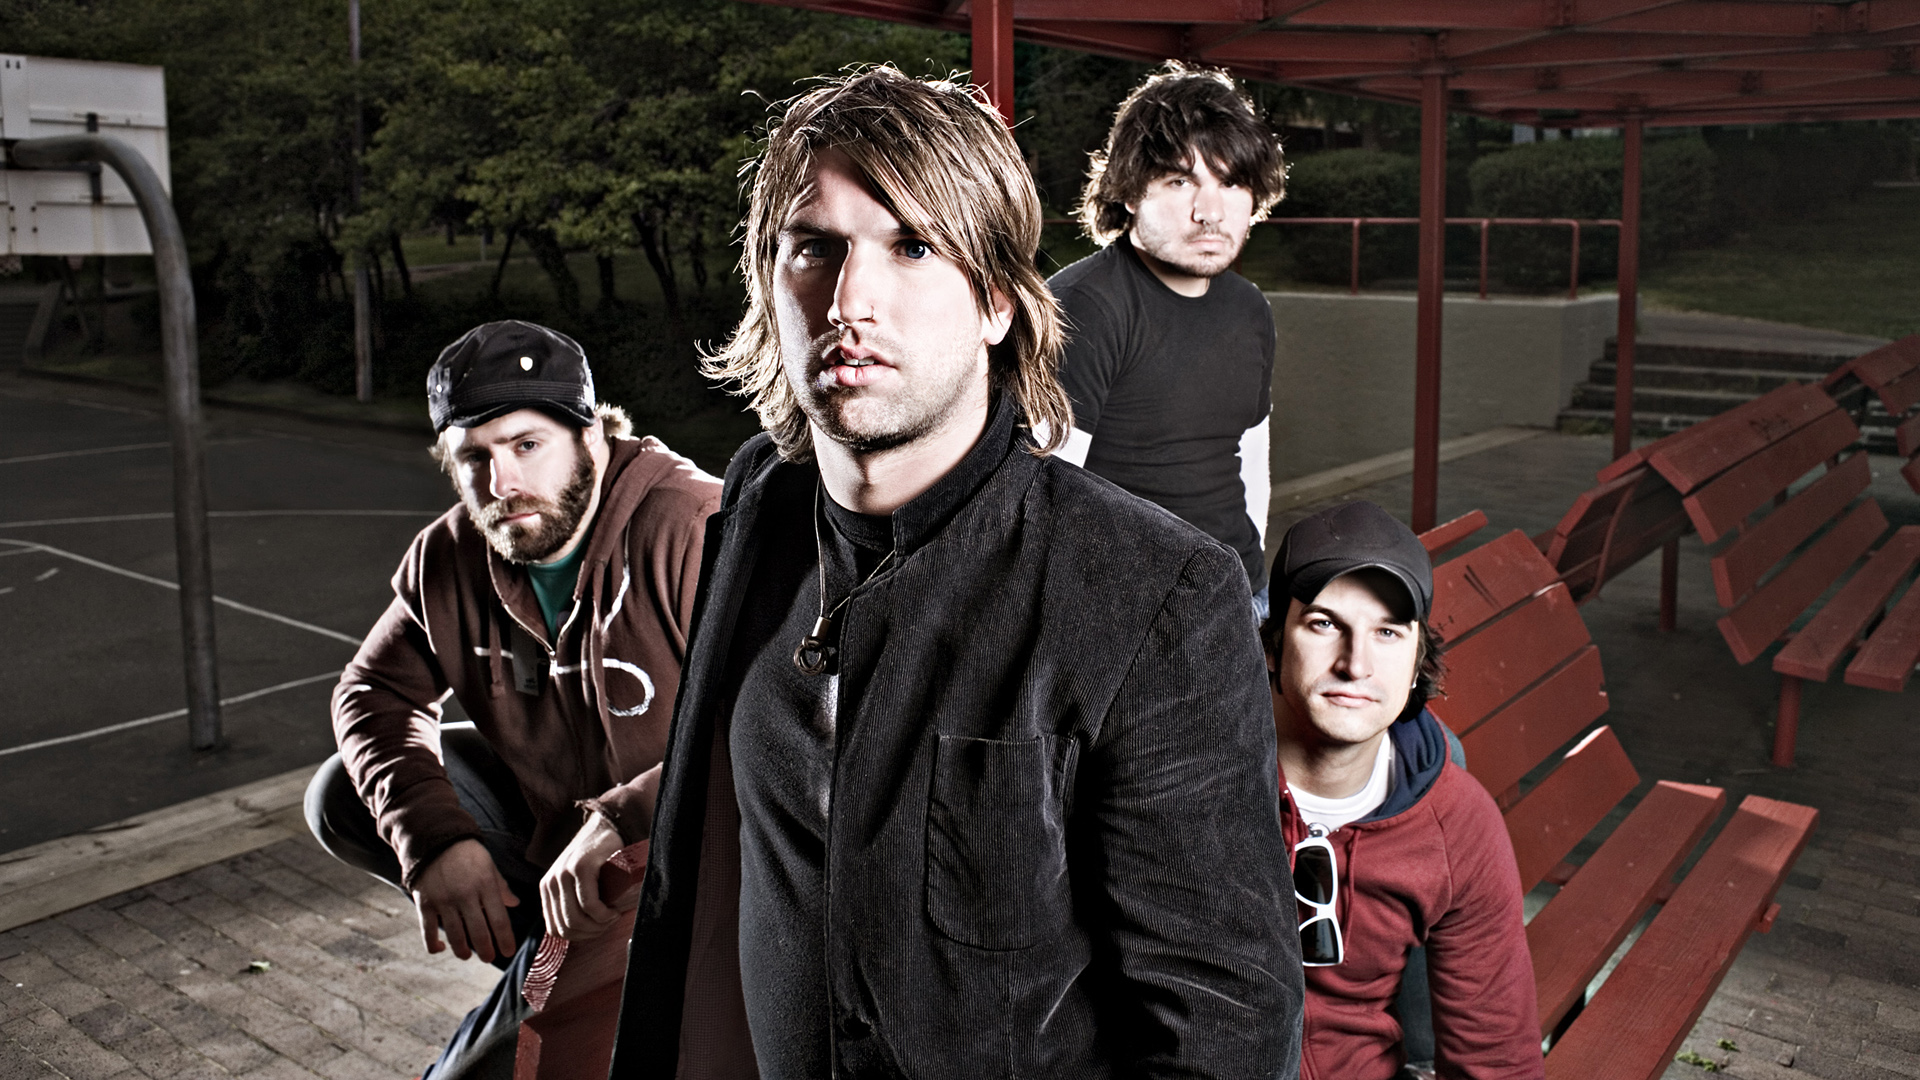 Every Time I Die The Big Dirty